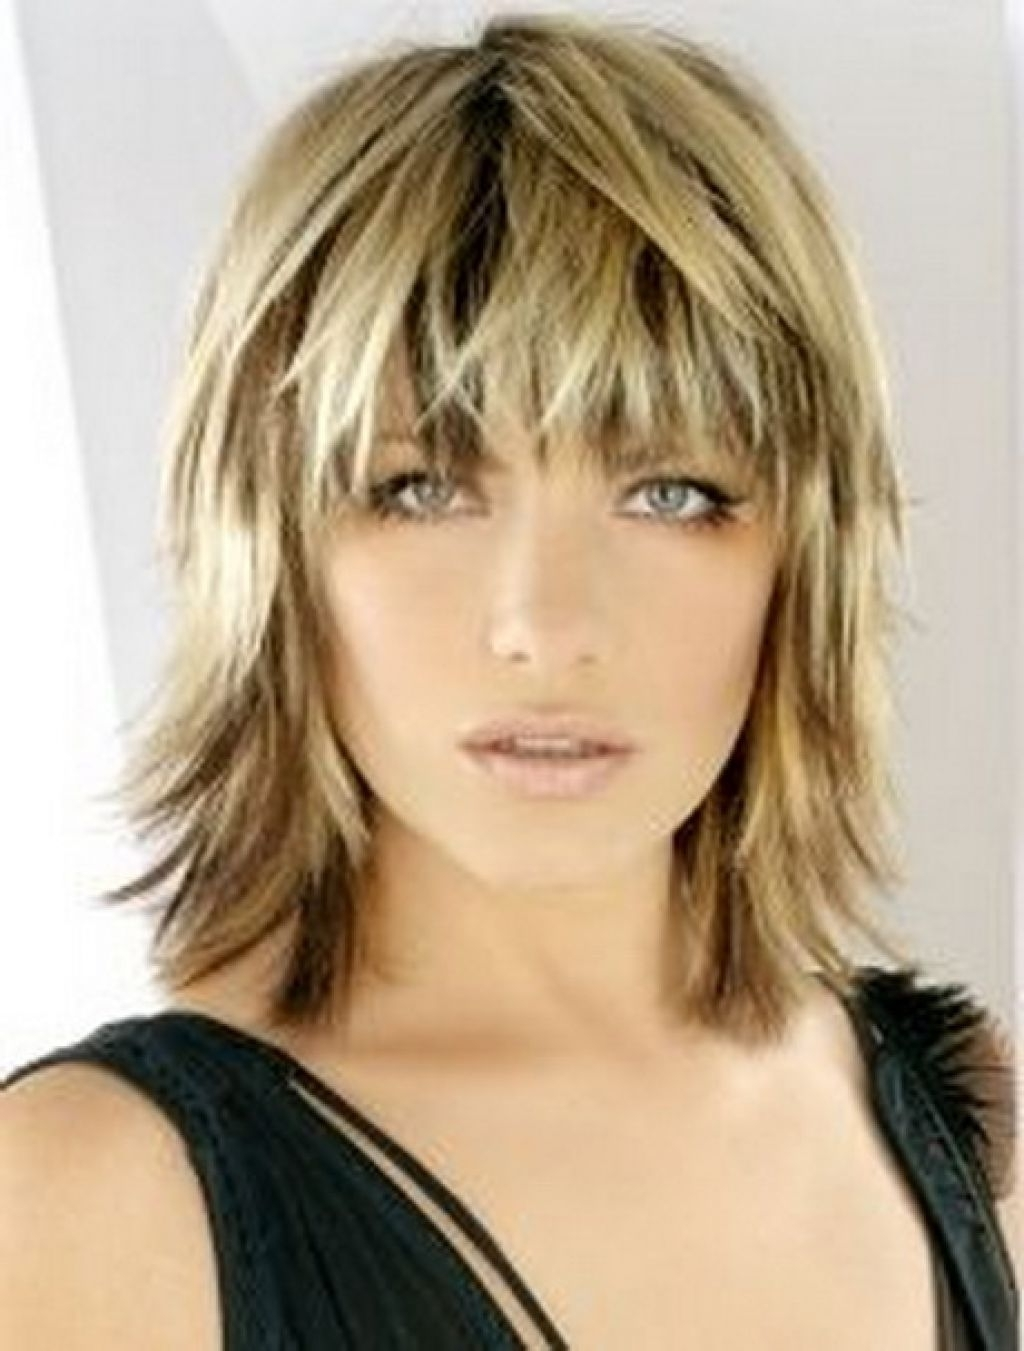 Well Known Medium Shaggy Hairstyles With Bangs Pertaining To Blonde Medium Length Choppy Shag Haircut With Wispy Bangs And Dark (View 3 of 15)